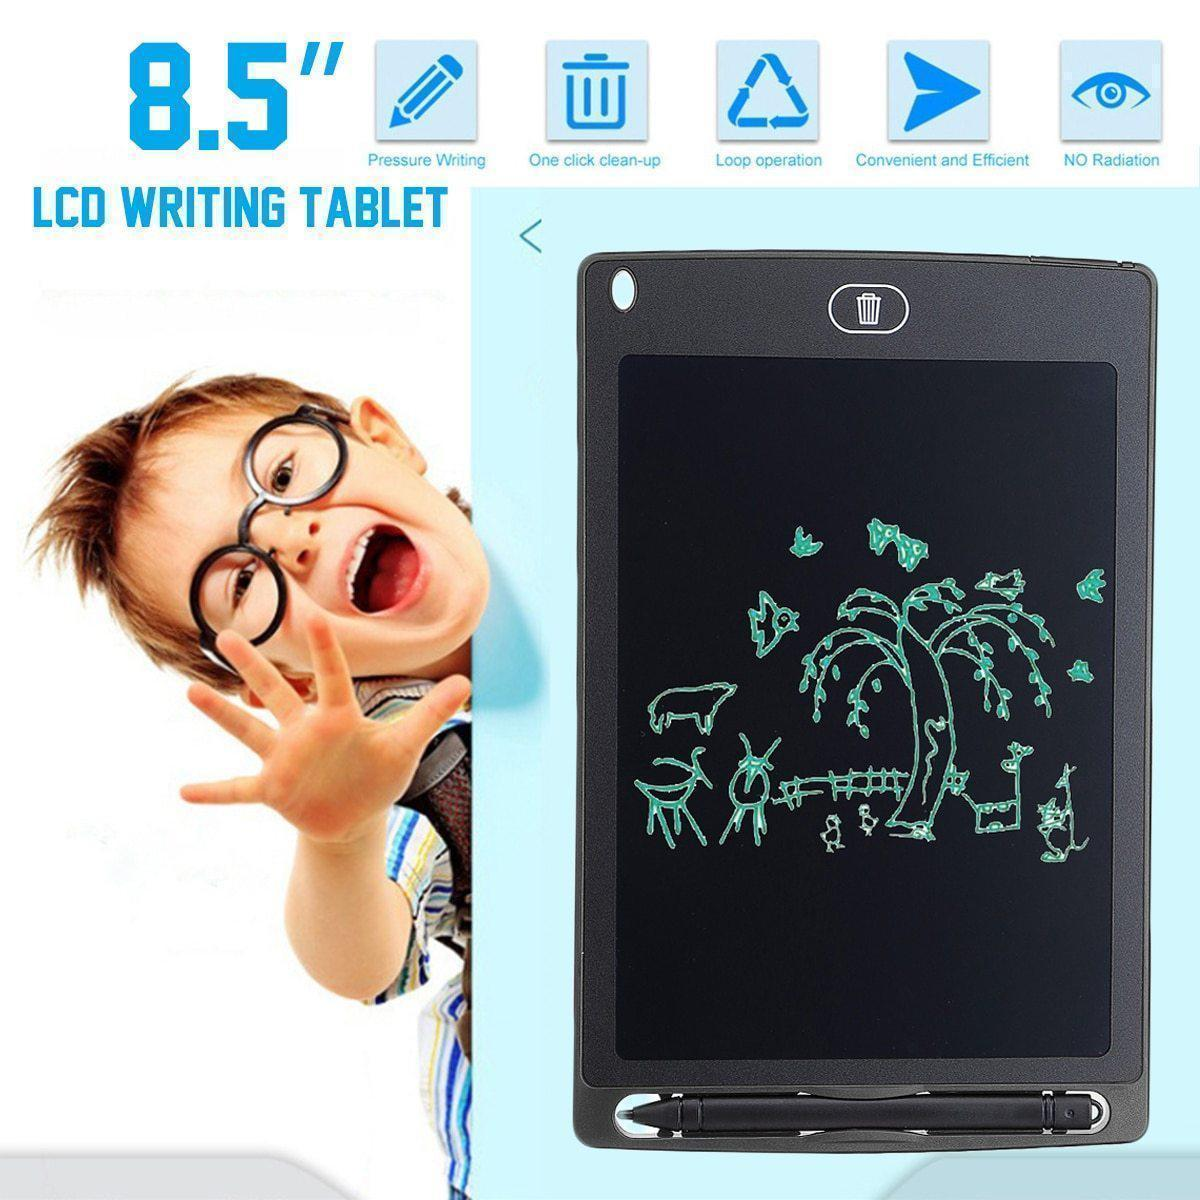 Portable Smart LCD Writing Tablet – Digital Drawing Graphics Board - Portable Smart LCD Writing Tablet -Blue - Shopptique